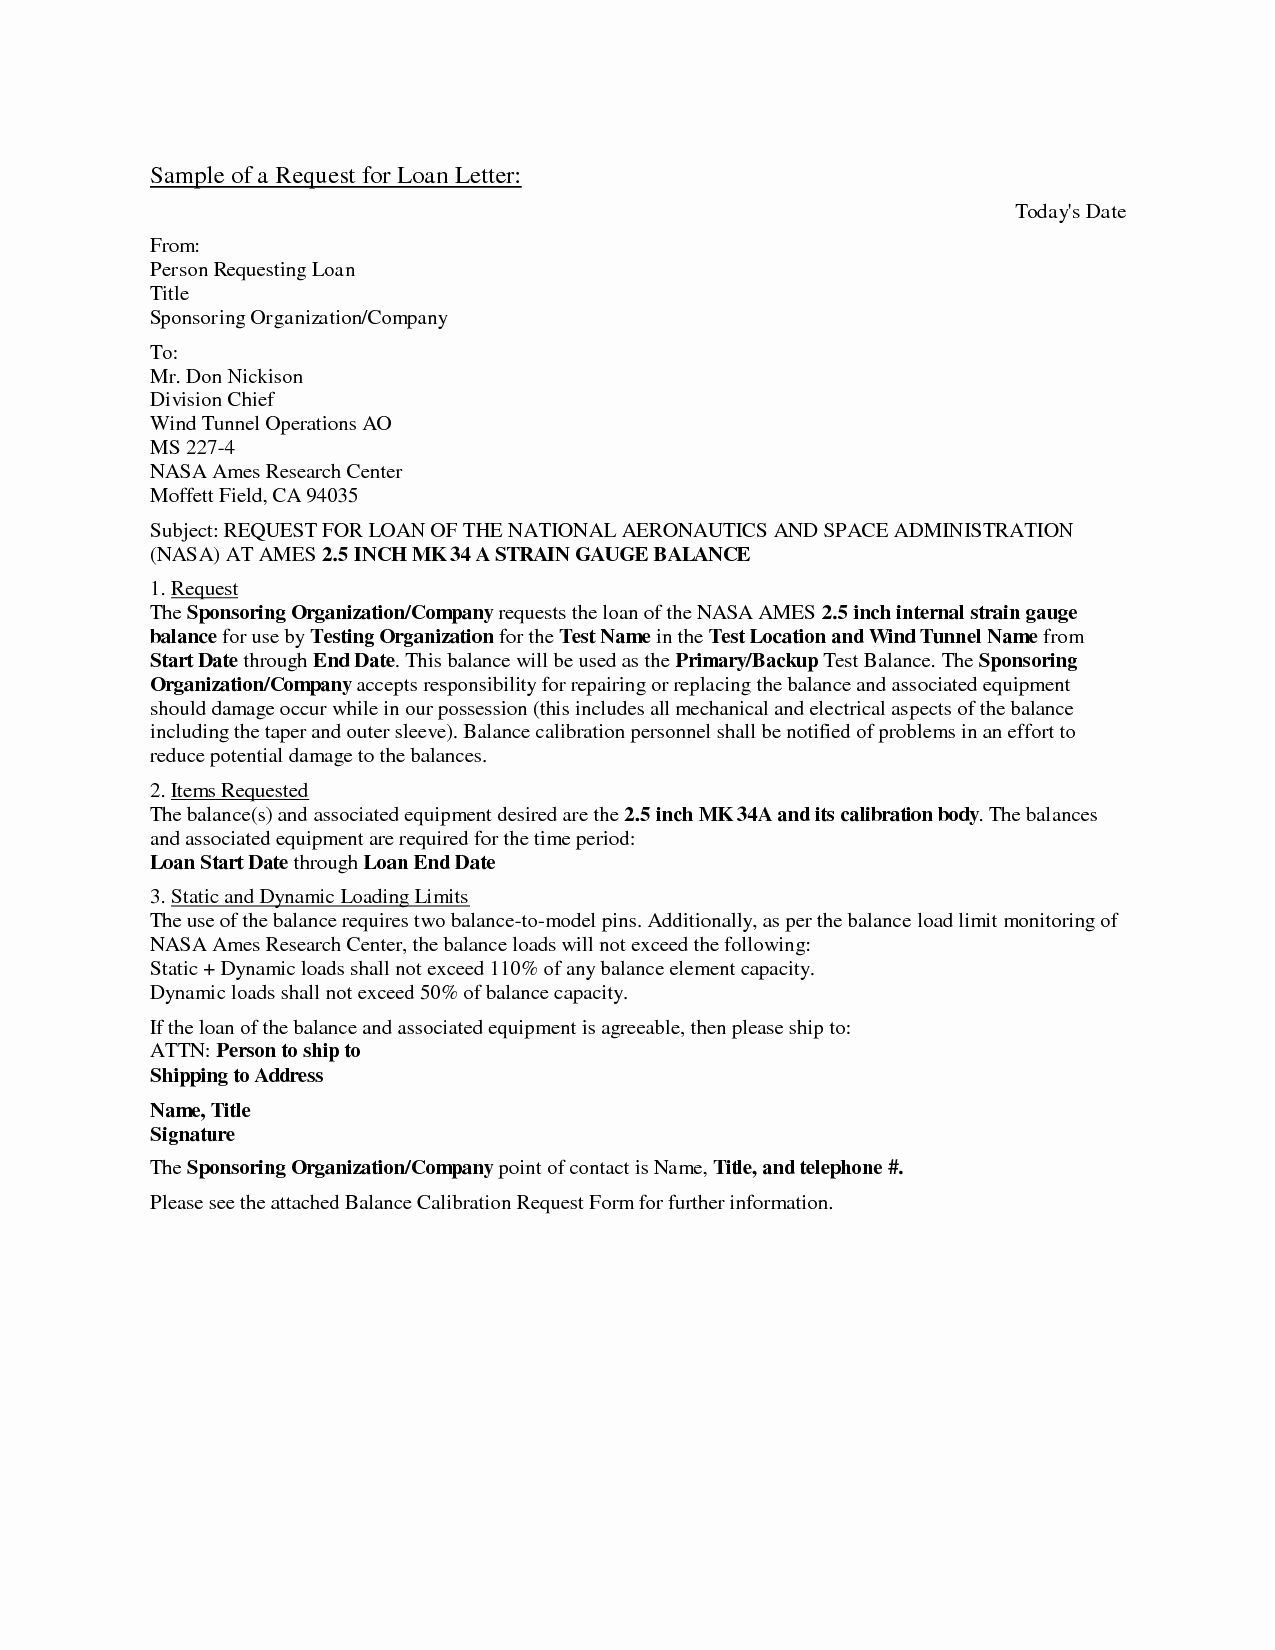 Personal Loan Proposal Template Unique Image Result For Business Loan Foreclosure Request Letter In 2020 Lettering Proposal Templates Personal Loans